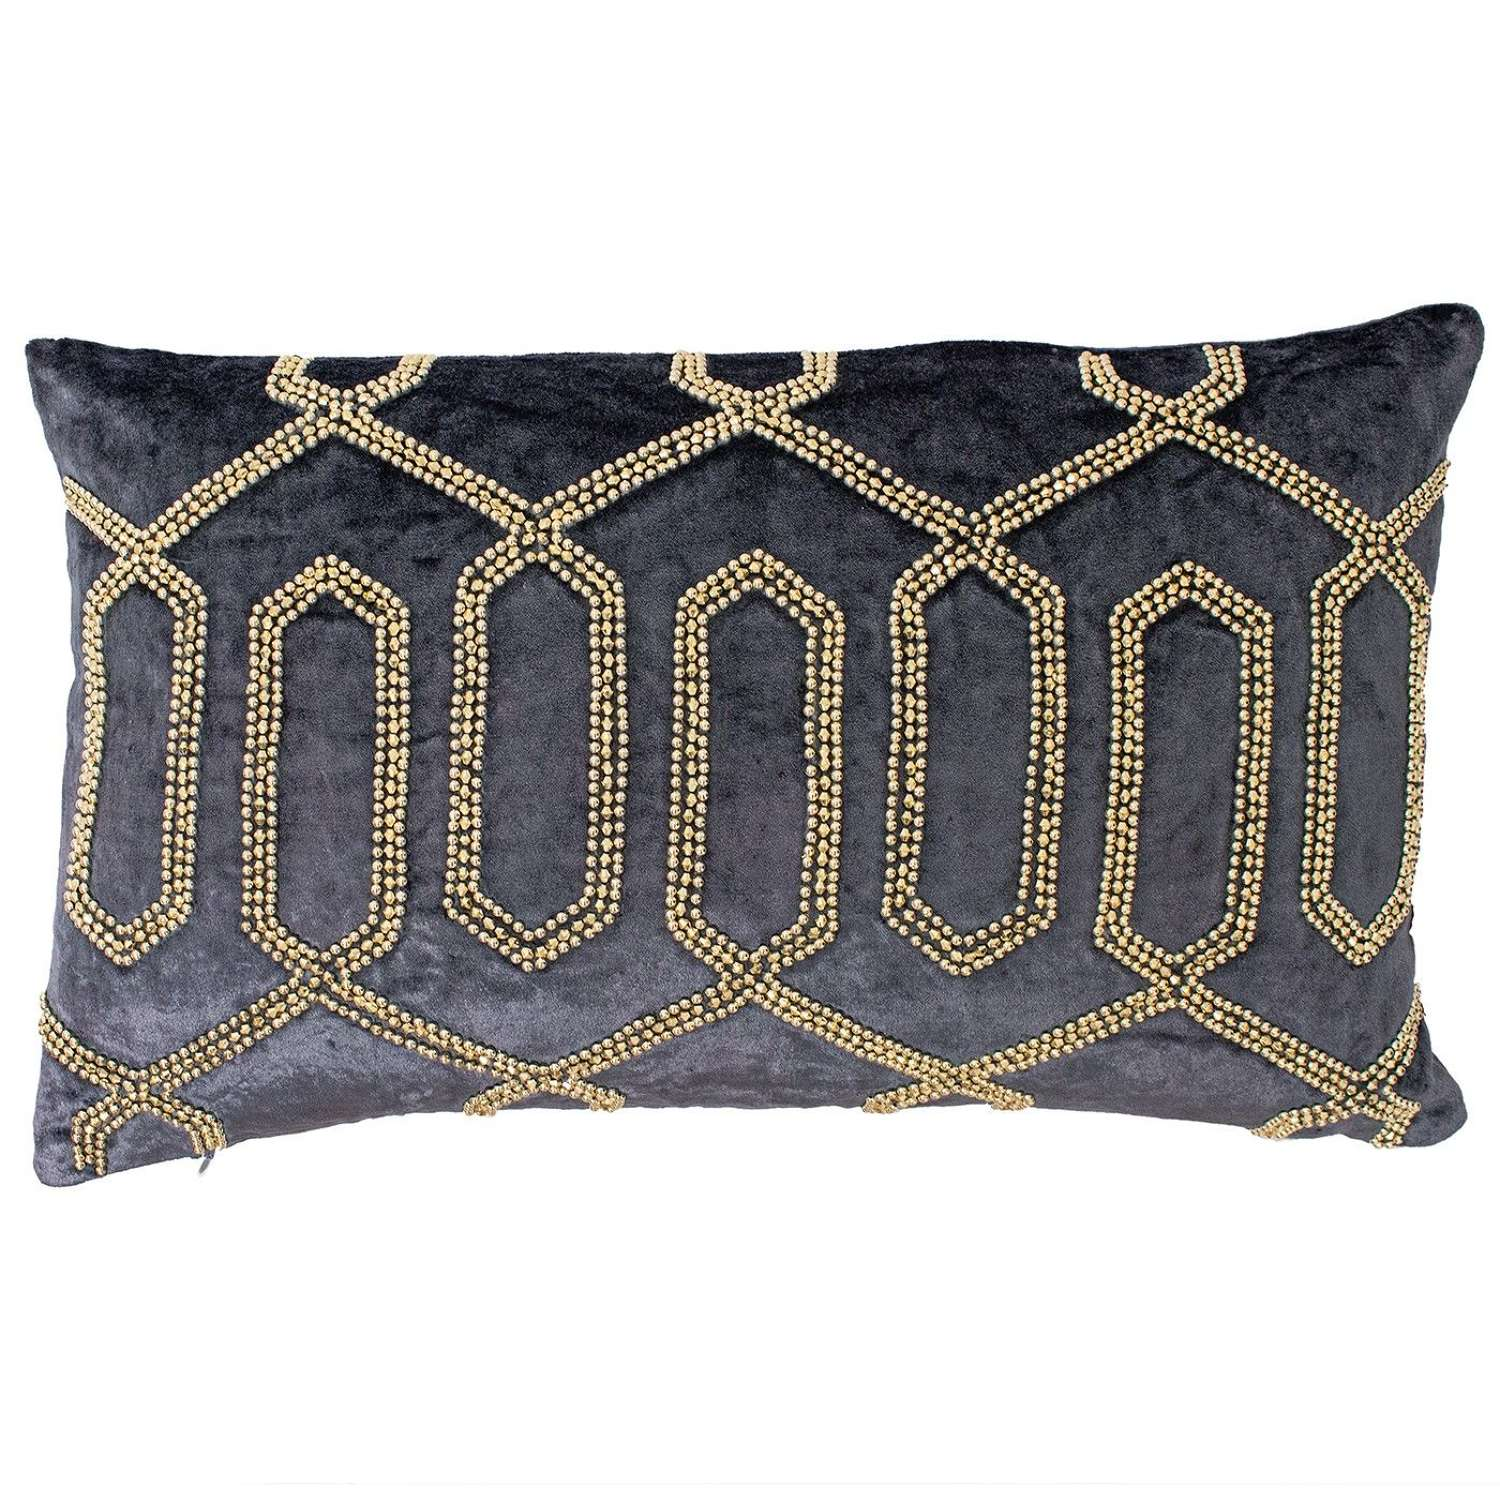 Oblong Beaded Cushion - Blue/Champagne